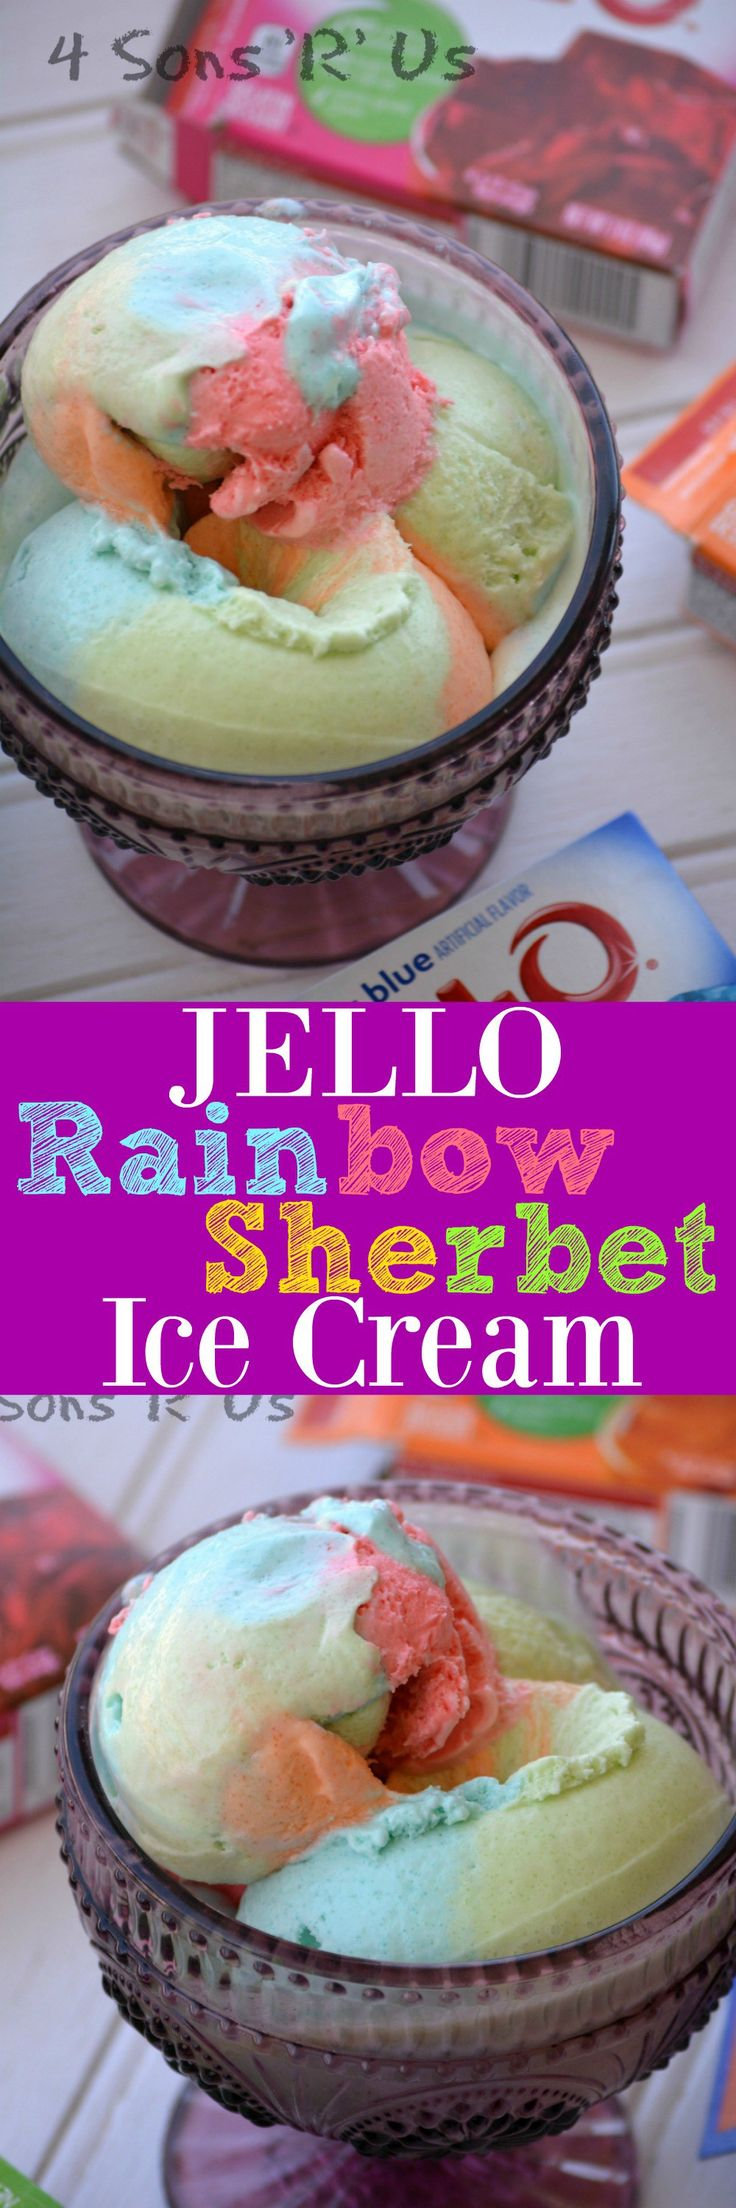 Two ingredients is all you need, and no fancy equipment or ice cream maker's required for this fun, no churn Jello Rainbow Sherbet Ice Cream.